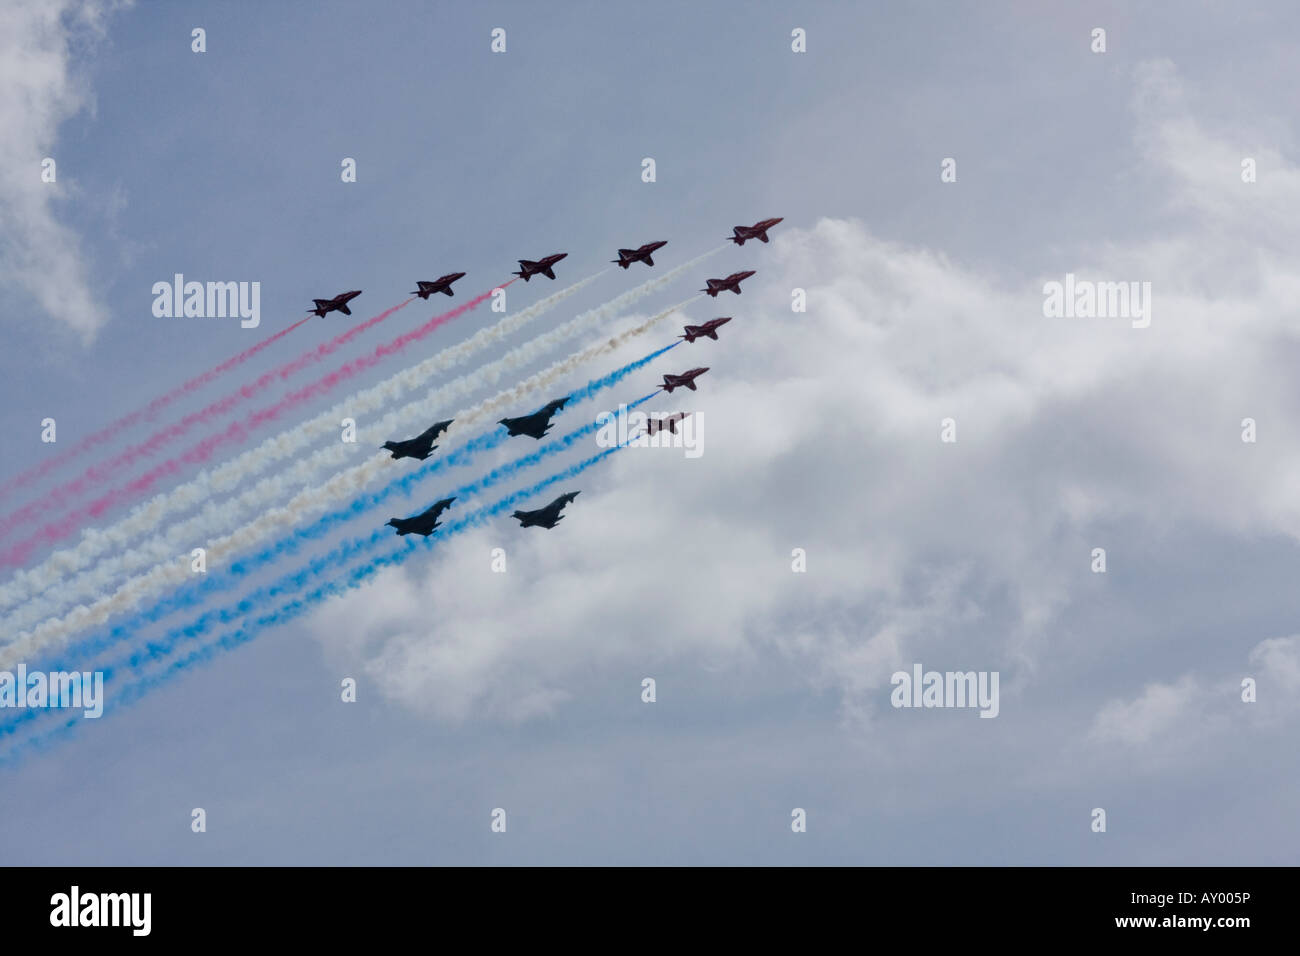 RAF Red Arrows formation aerobatic team flying in formation with four Typhoon aircraft over London to celebrate - Stock Image